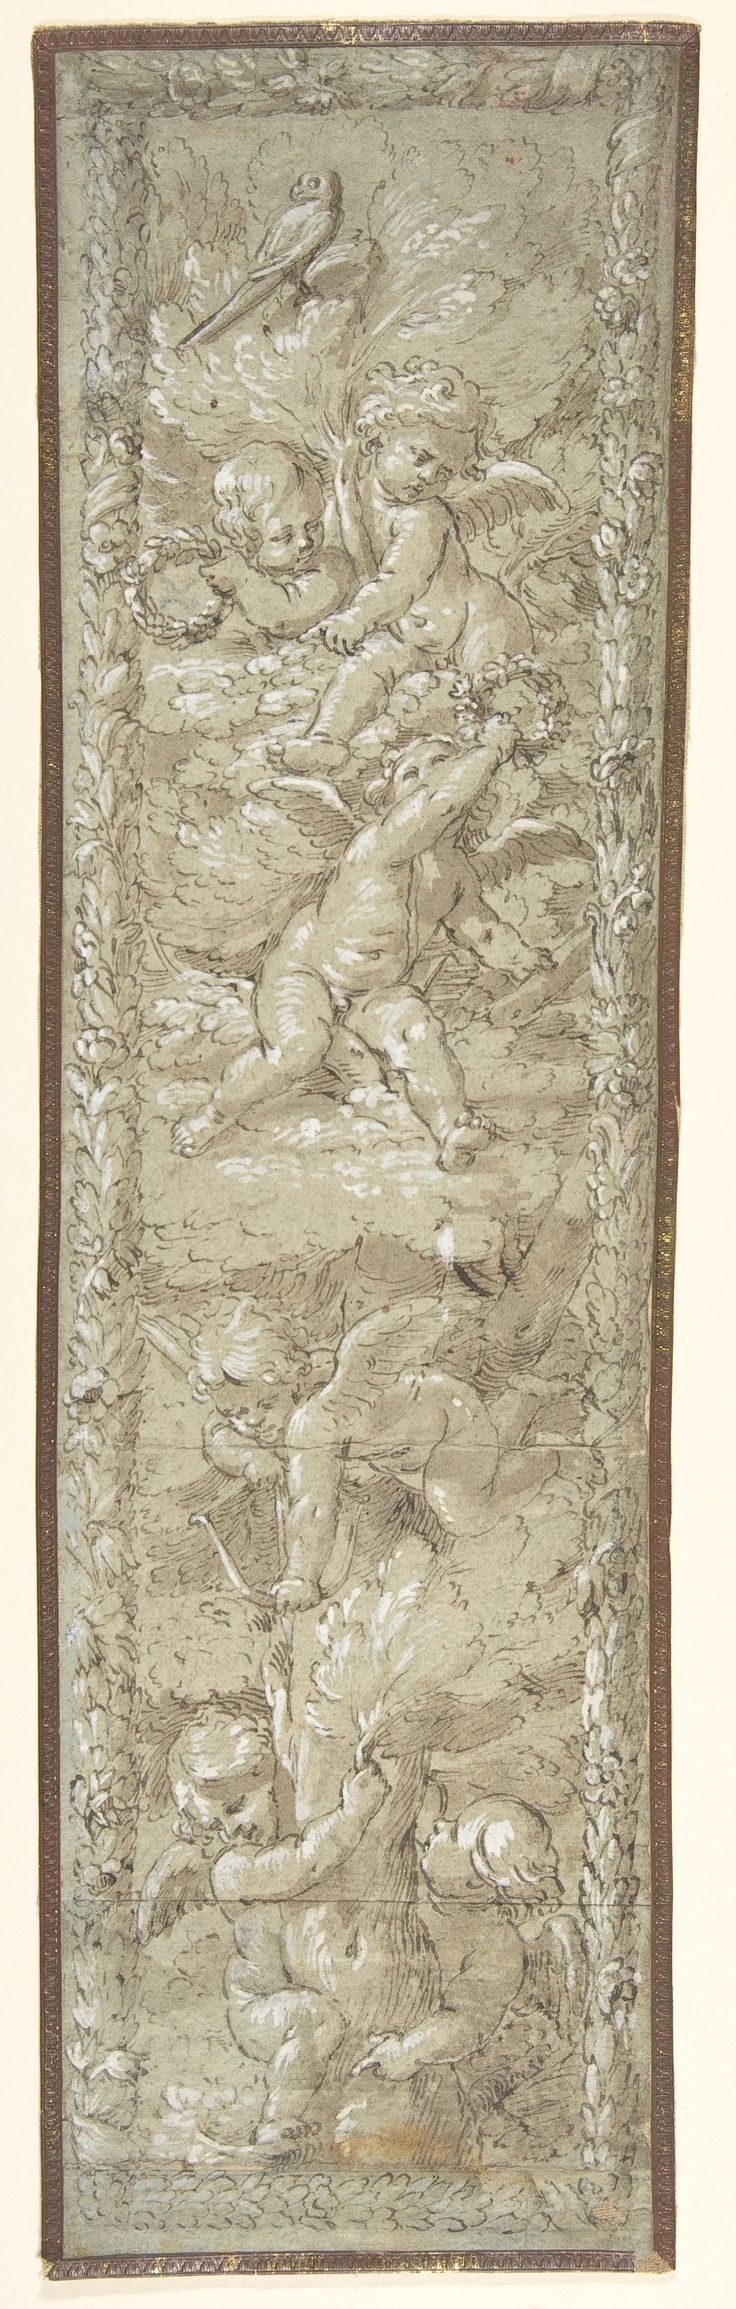 Anonymous, Italian, first half of the 18th century, Cherubs in a Tree, Pen and brown ink, brush and brown wash, 49.6 x 13.3cm